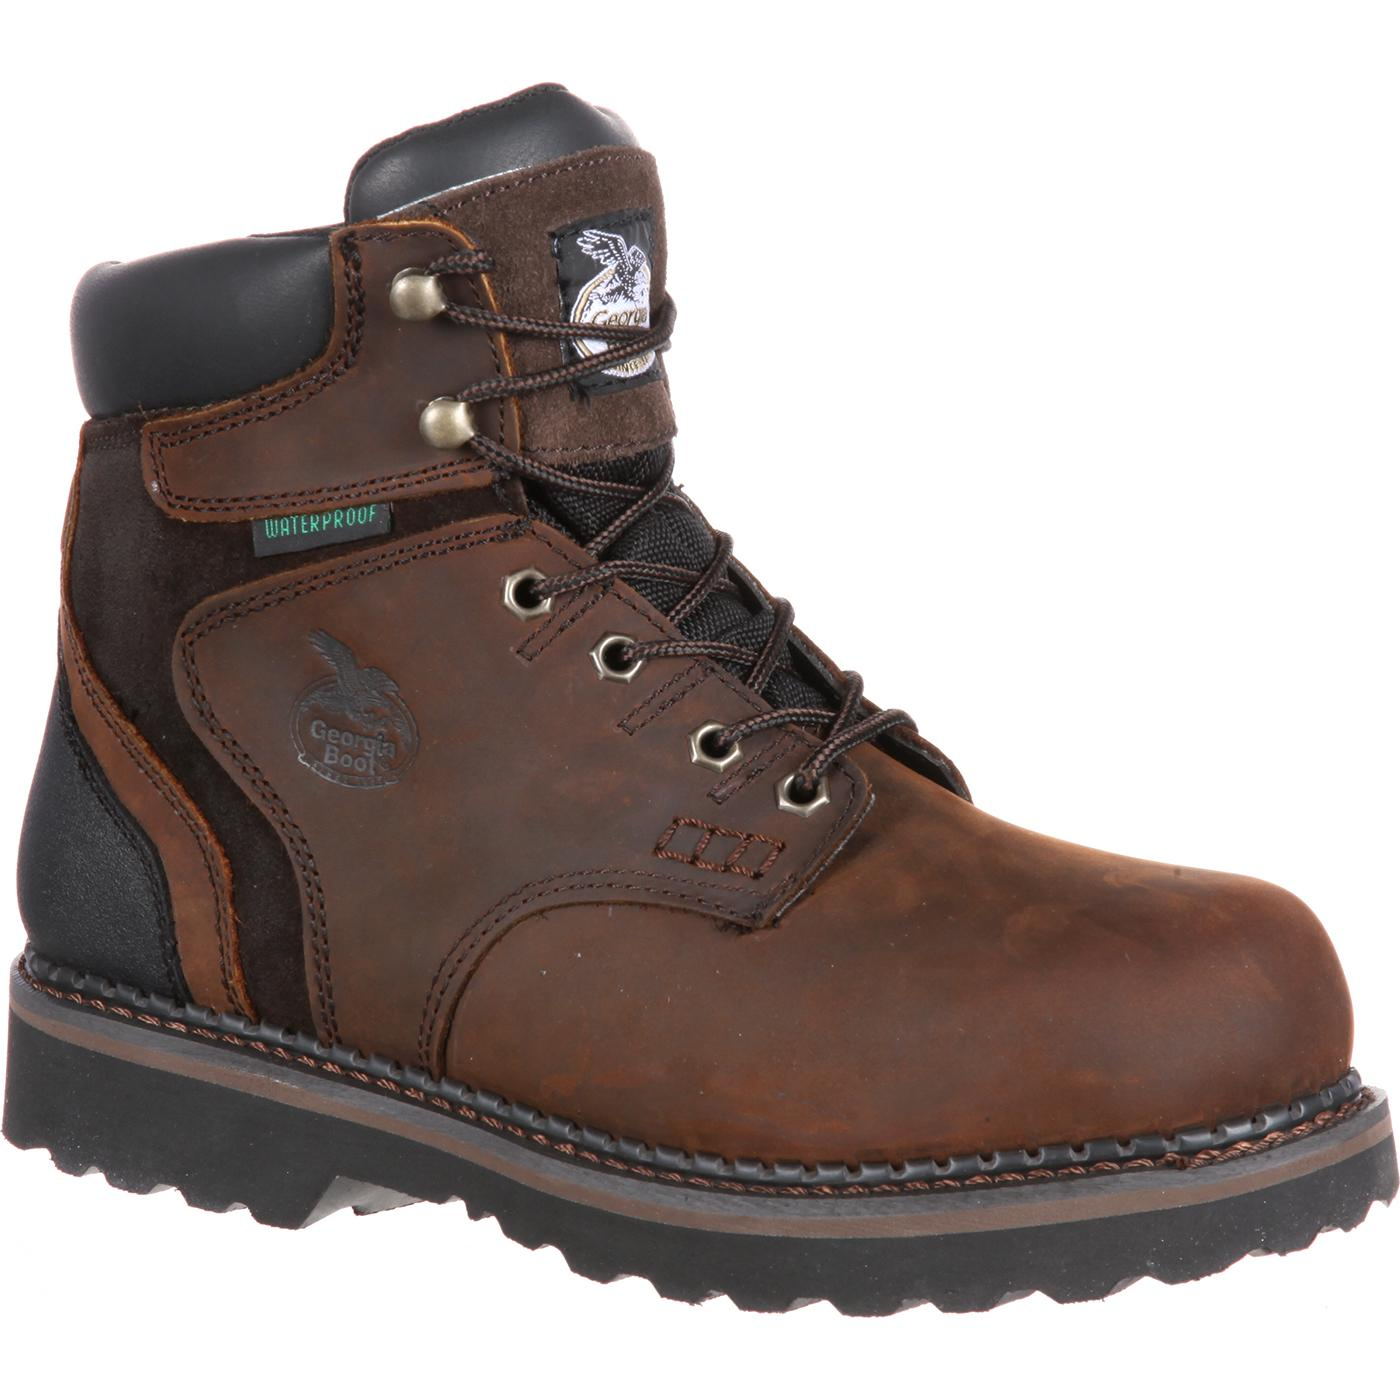 Best Place To Buy Work Boots Sn7oGjm7